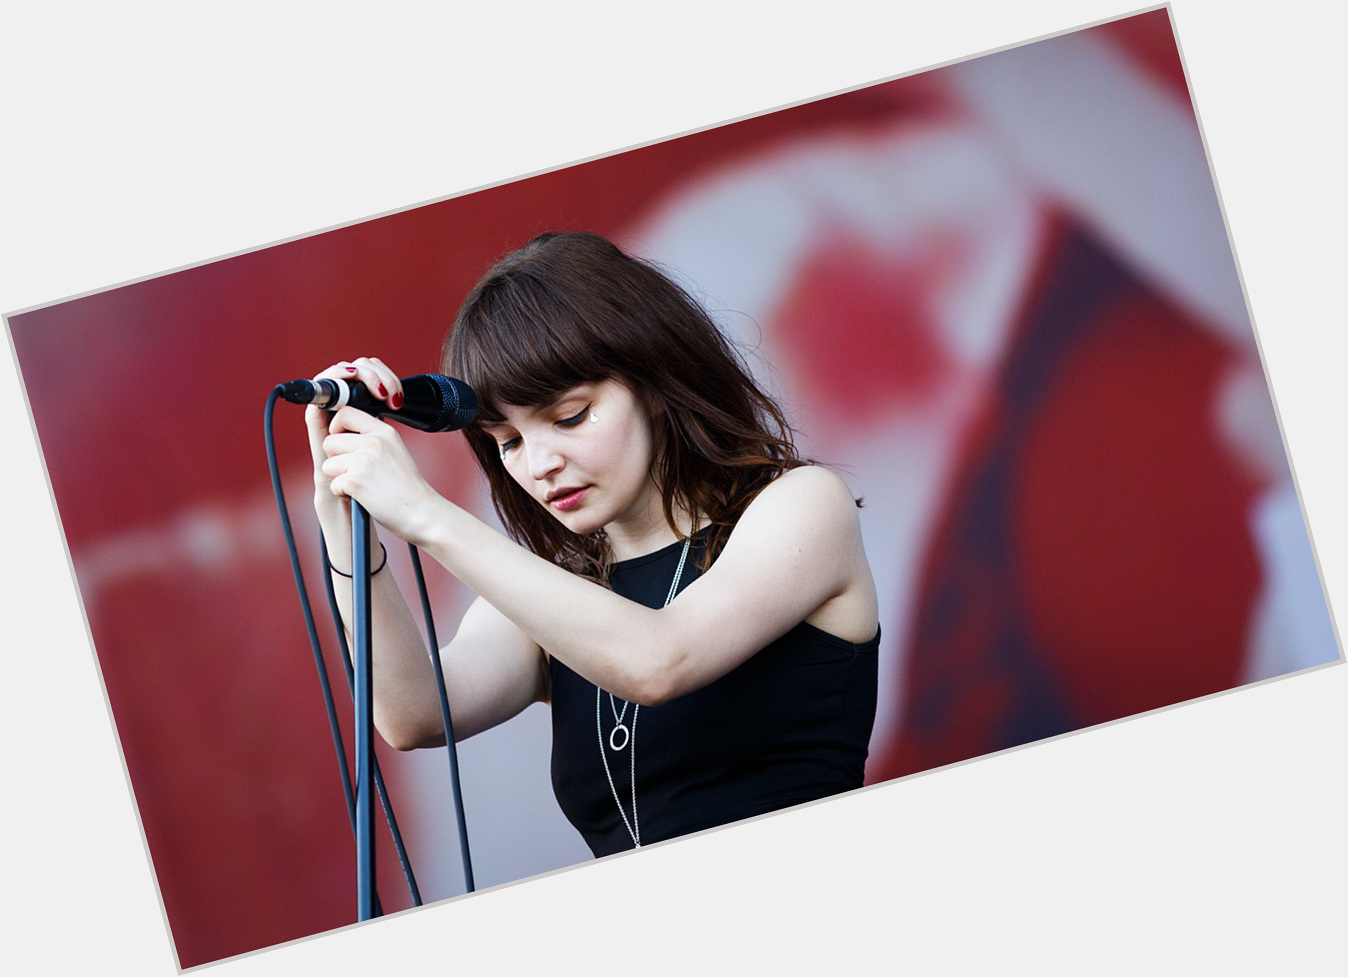 Lauren Eve Mayberry picture 1.jpg